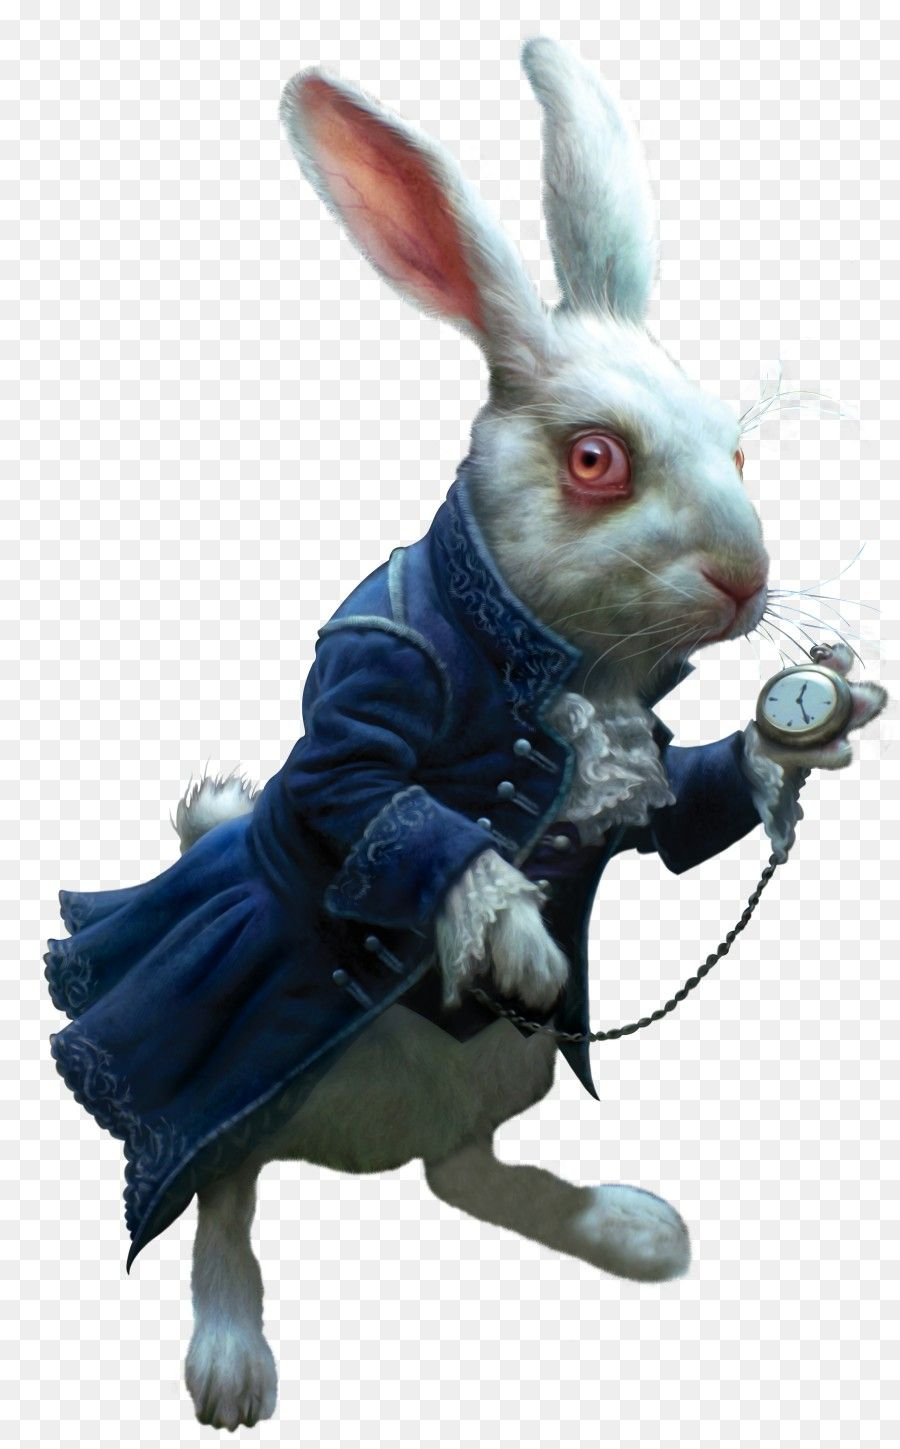 Free Download Western Magic Dark Embellishment Rabbit Png Image Iccpic Iccpic Com Tatoeages Knuffel